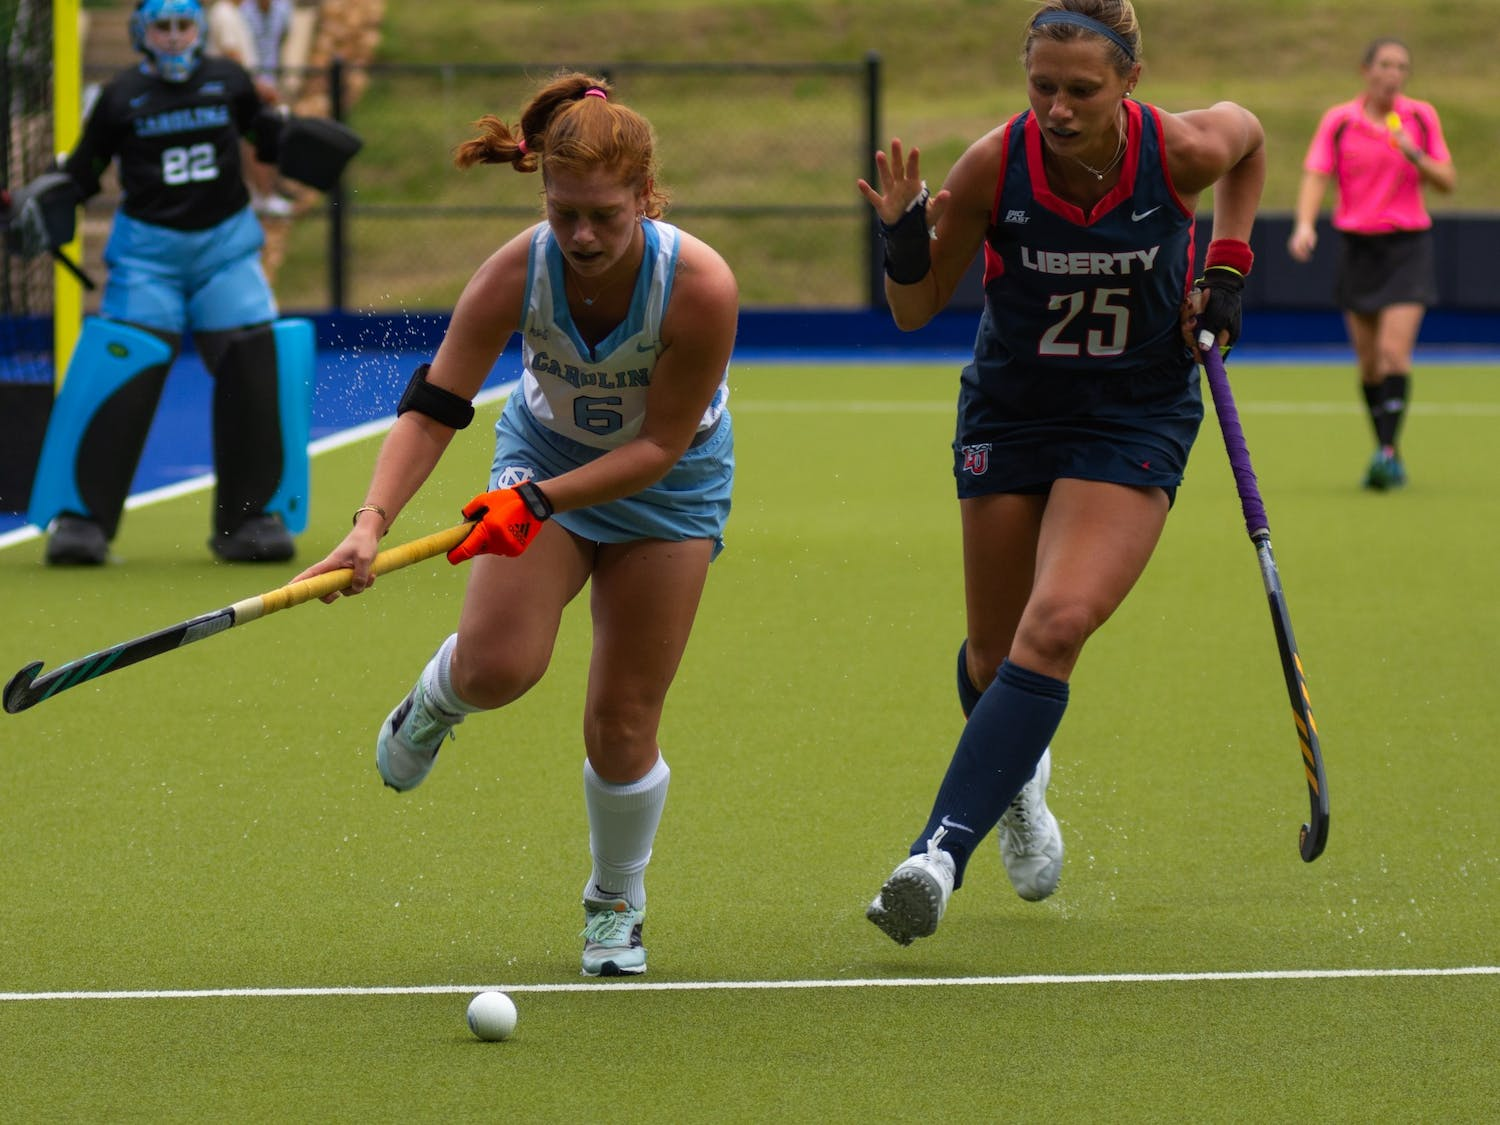 Freshman back Kelly Smith (6) swipes the ball during UNC's Oct. 10 field hockey game against Liberty. The game proved to be a loss for the Tar Heels–Liberty headed home with a 4-0 win.